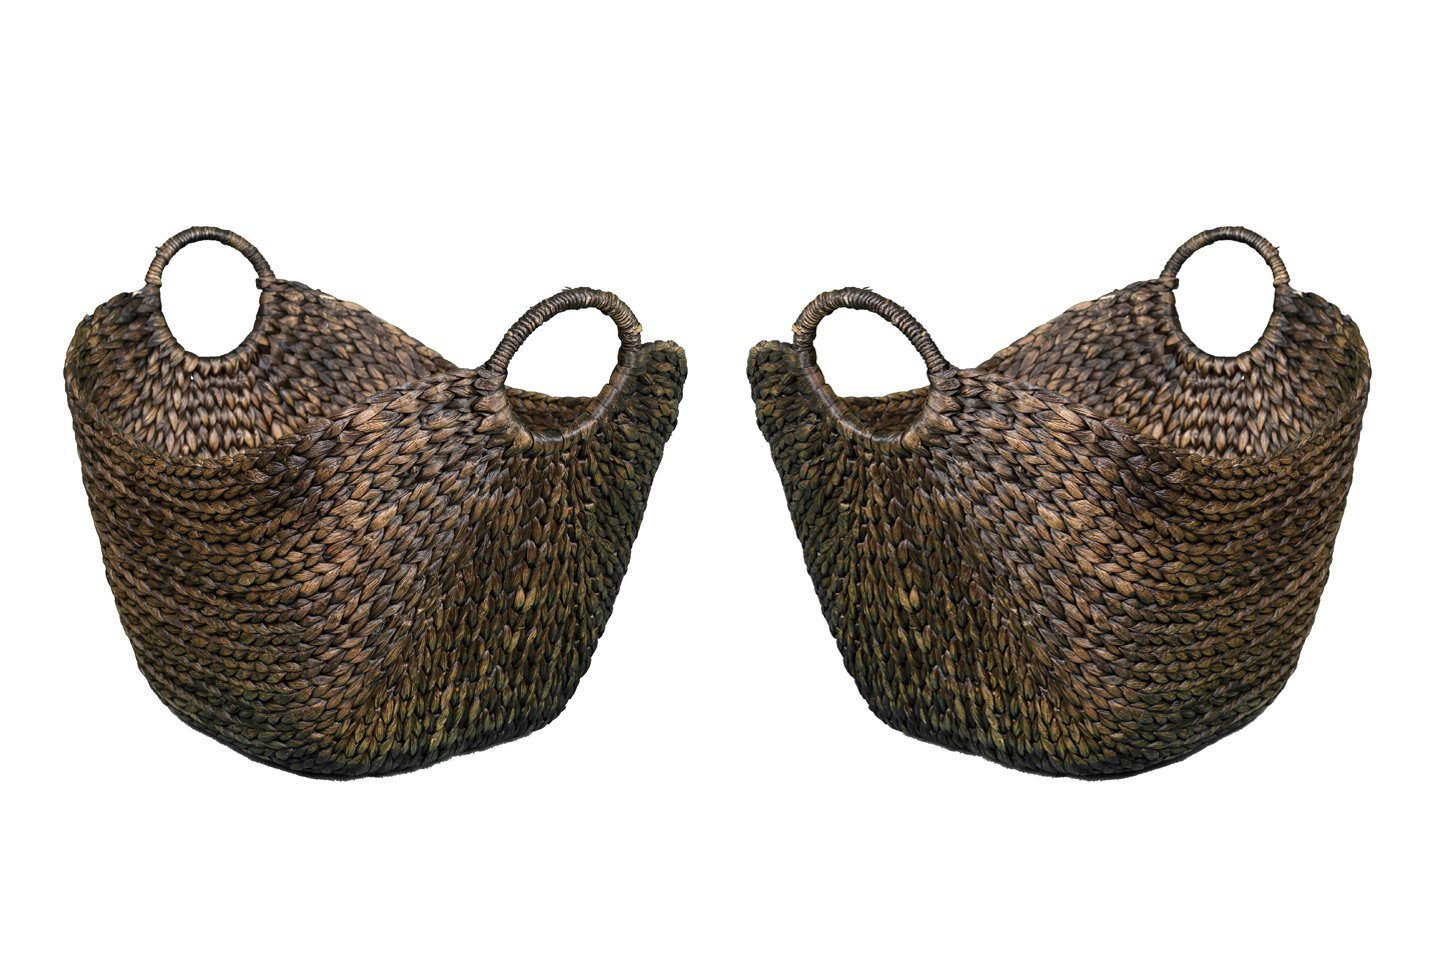 BirdRock Home Water Hyacinth Laundry Baskets (Espresso) | One Basket Included | Hand Woven FBA_5063